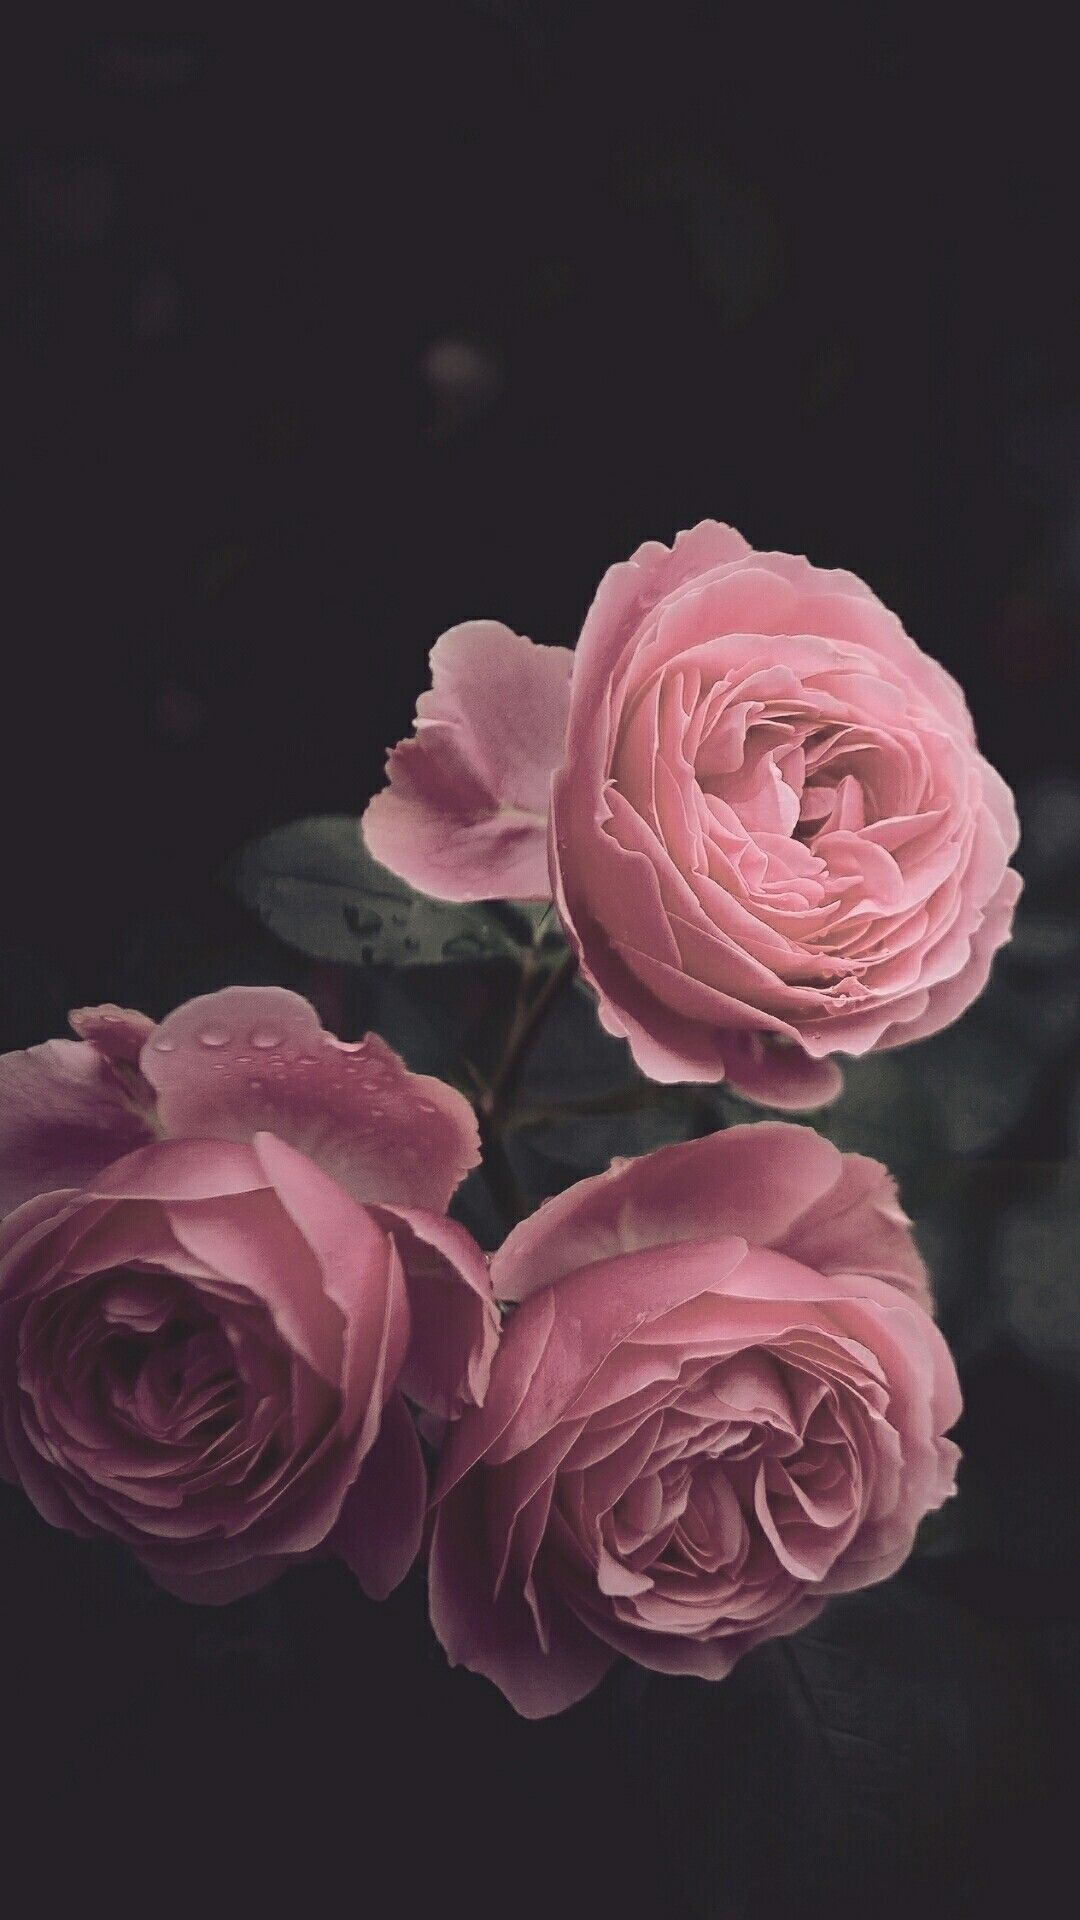 #Dark iPhone wallpaper #darkiphonewallpaper #Dark iPhone wallpaper #rosesaesthetic